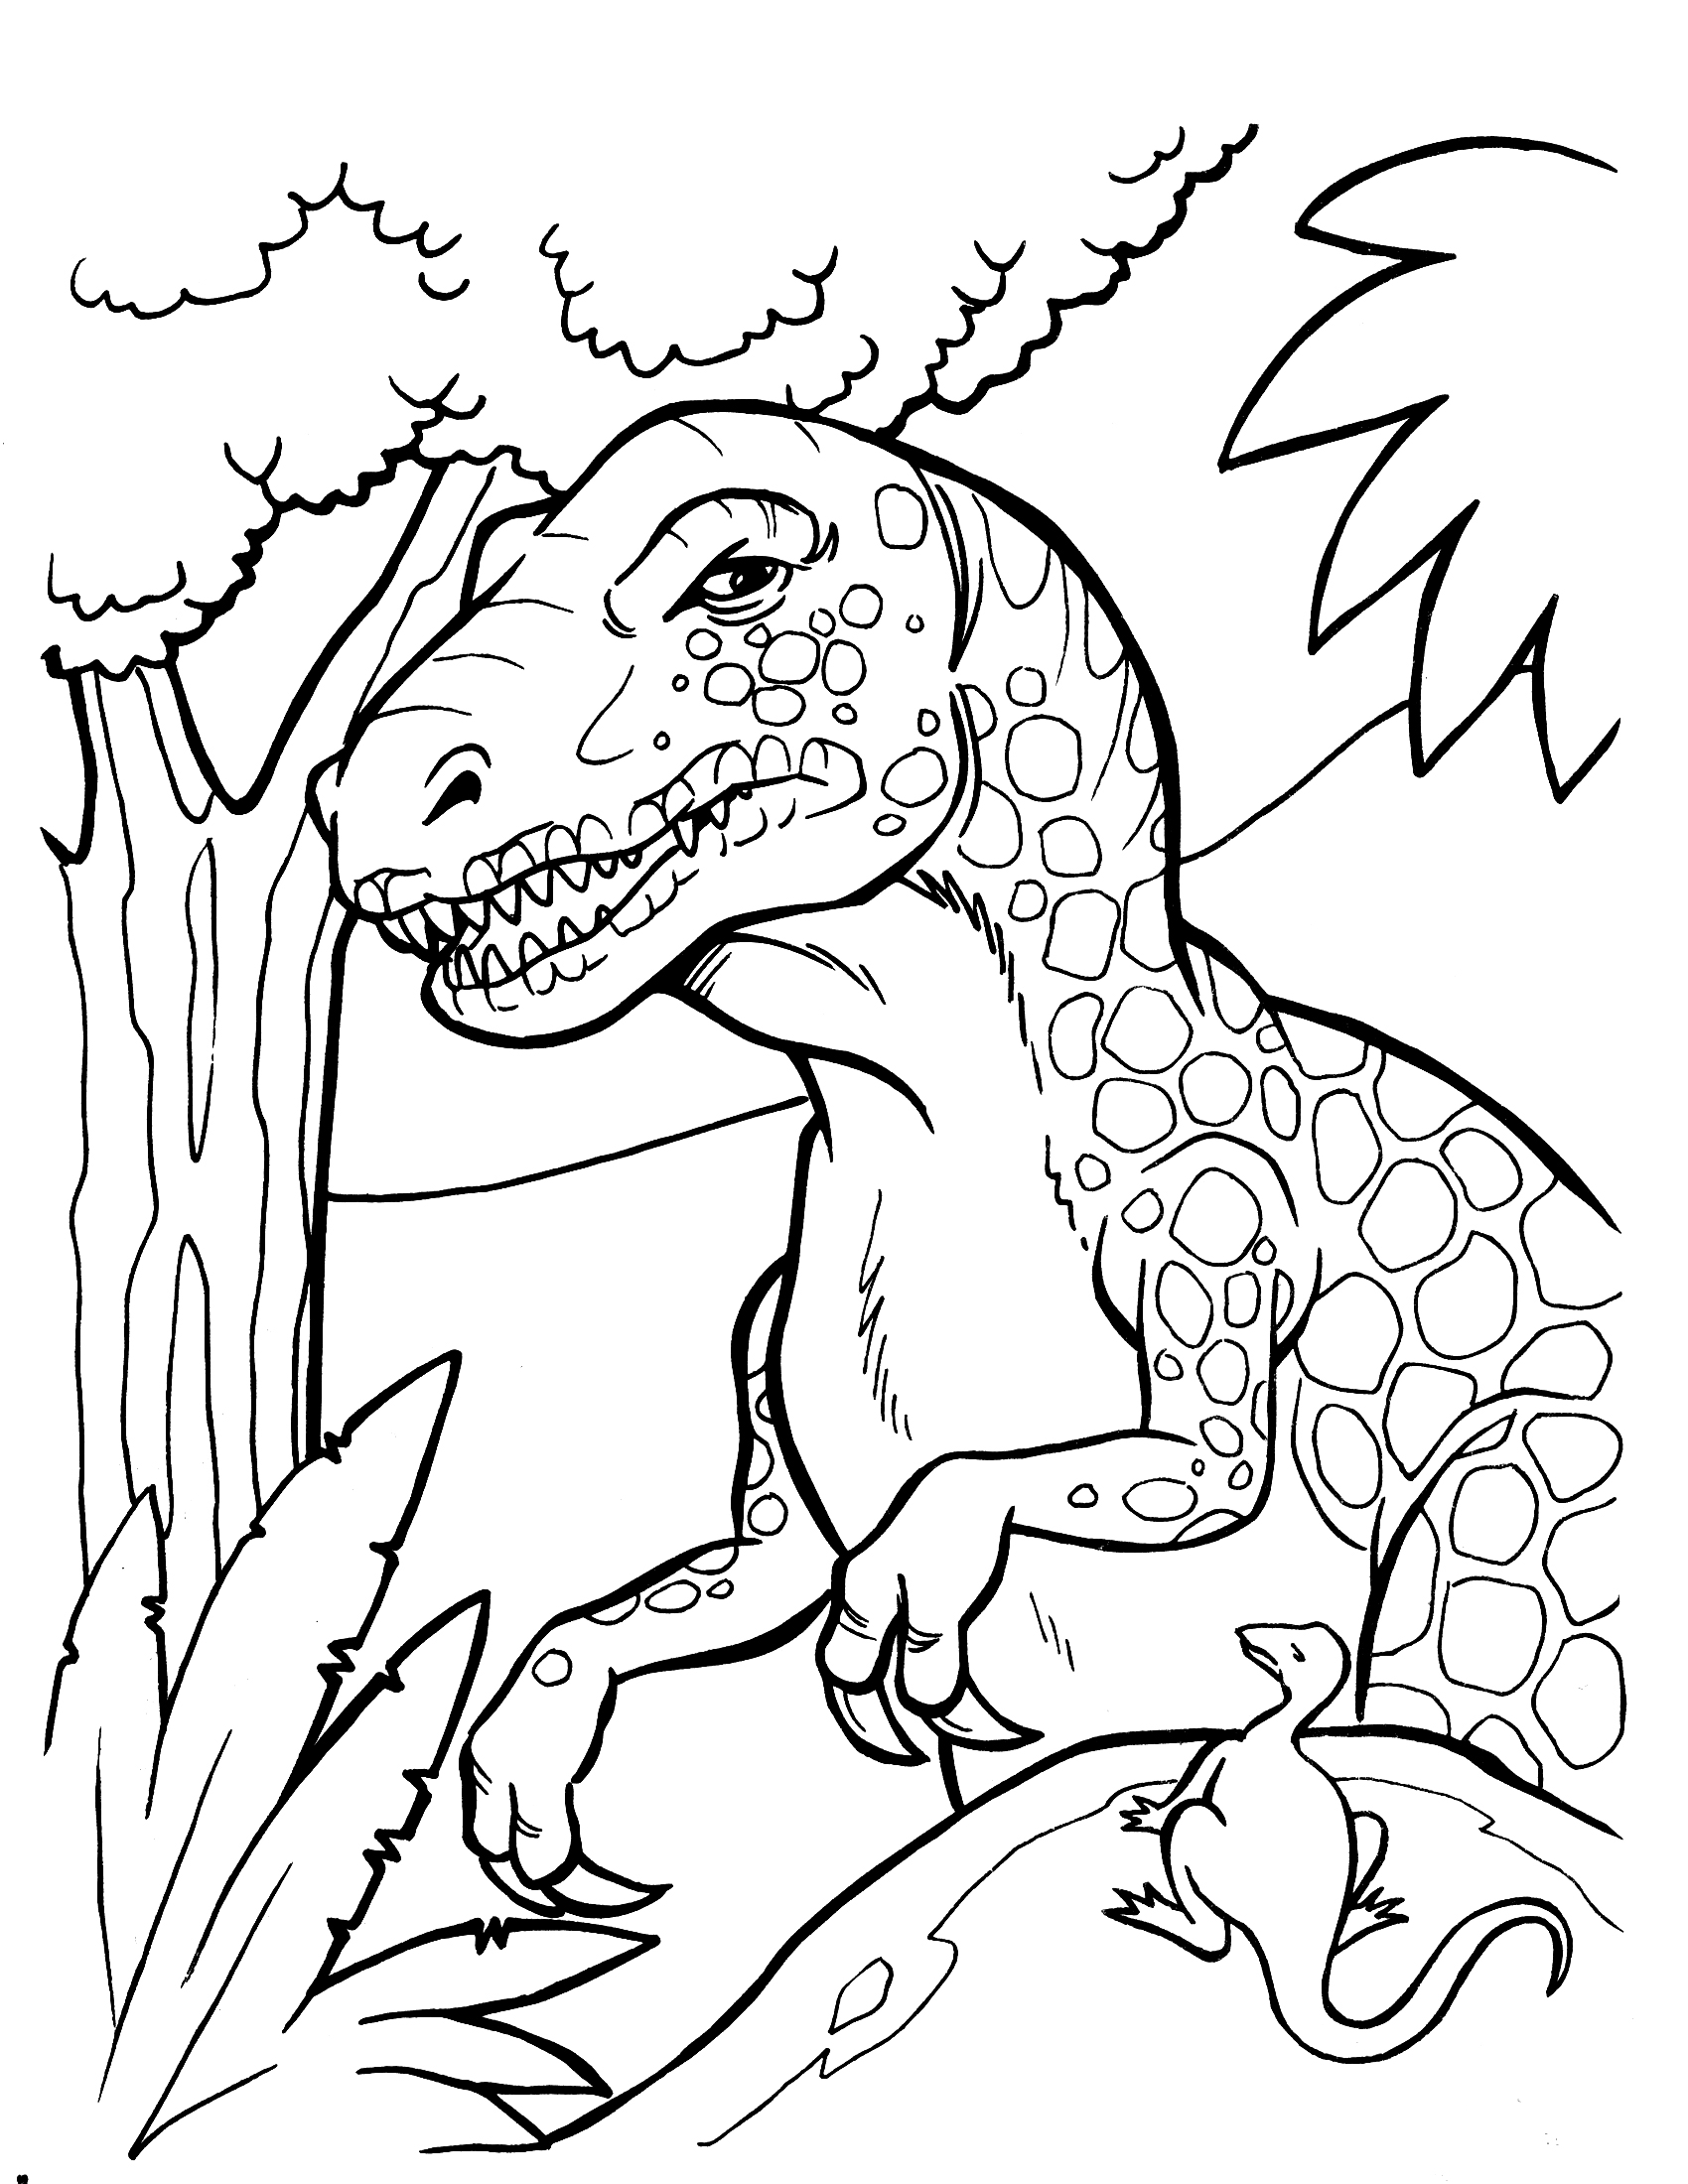 dinosaurs pictures to color dinosaurs to print triceratops dinosaurs kids coloring color pictures to dinosaurs